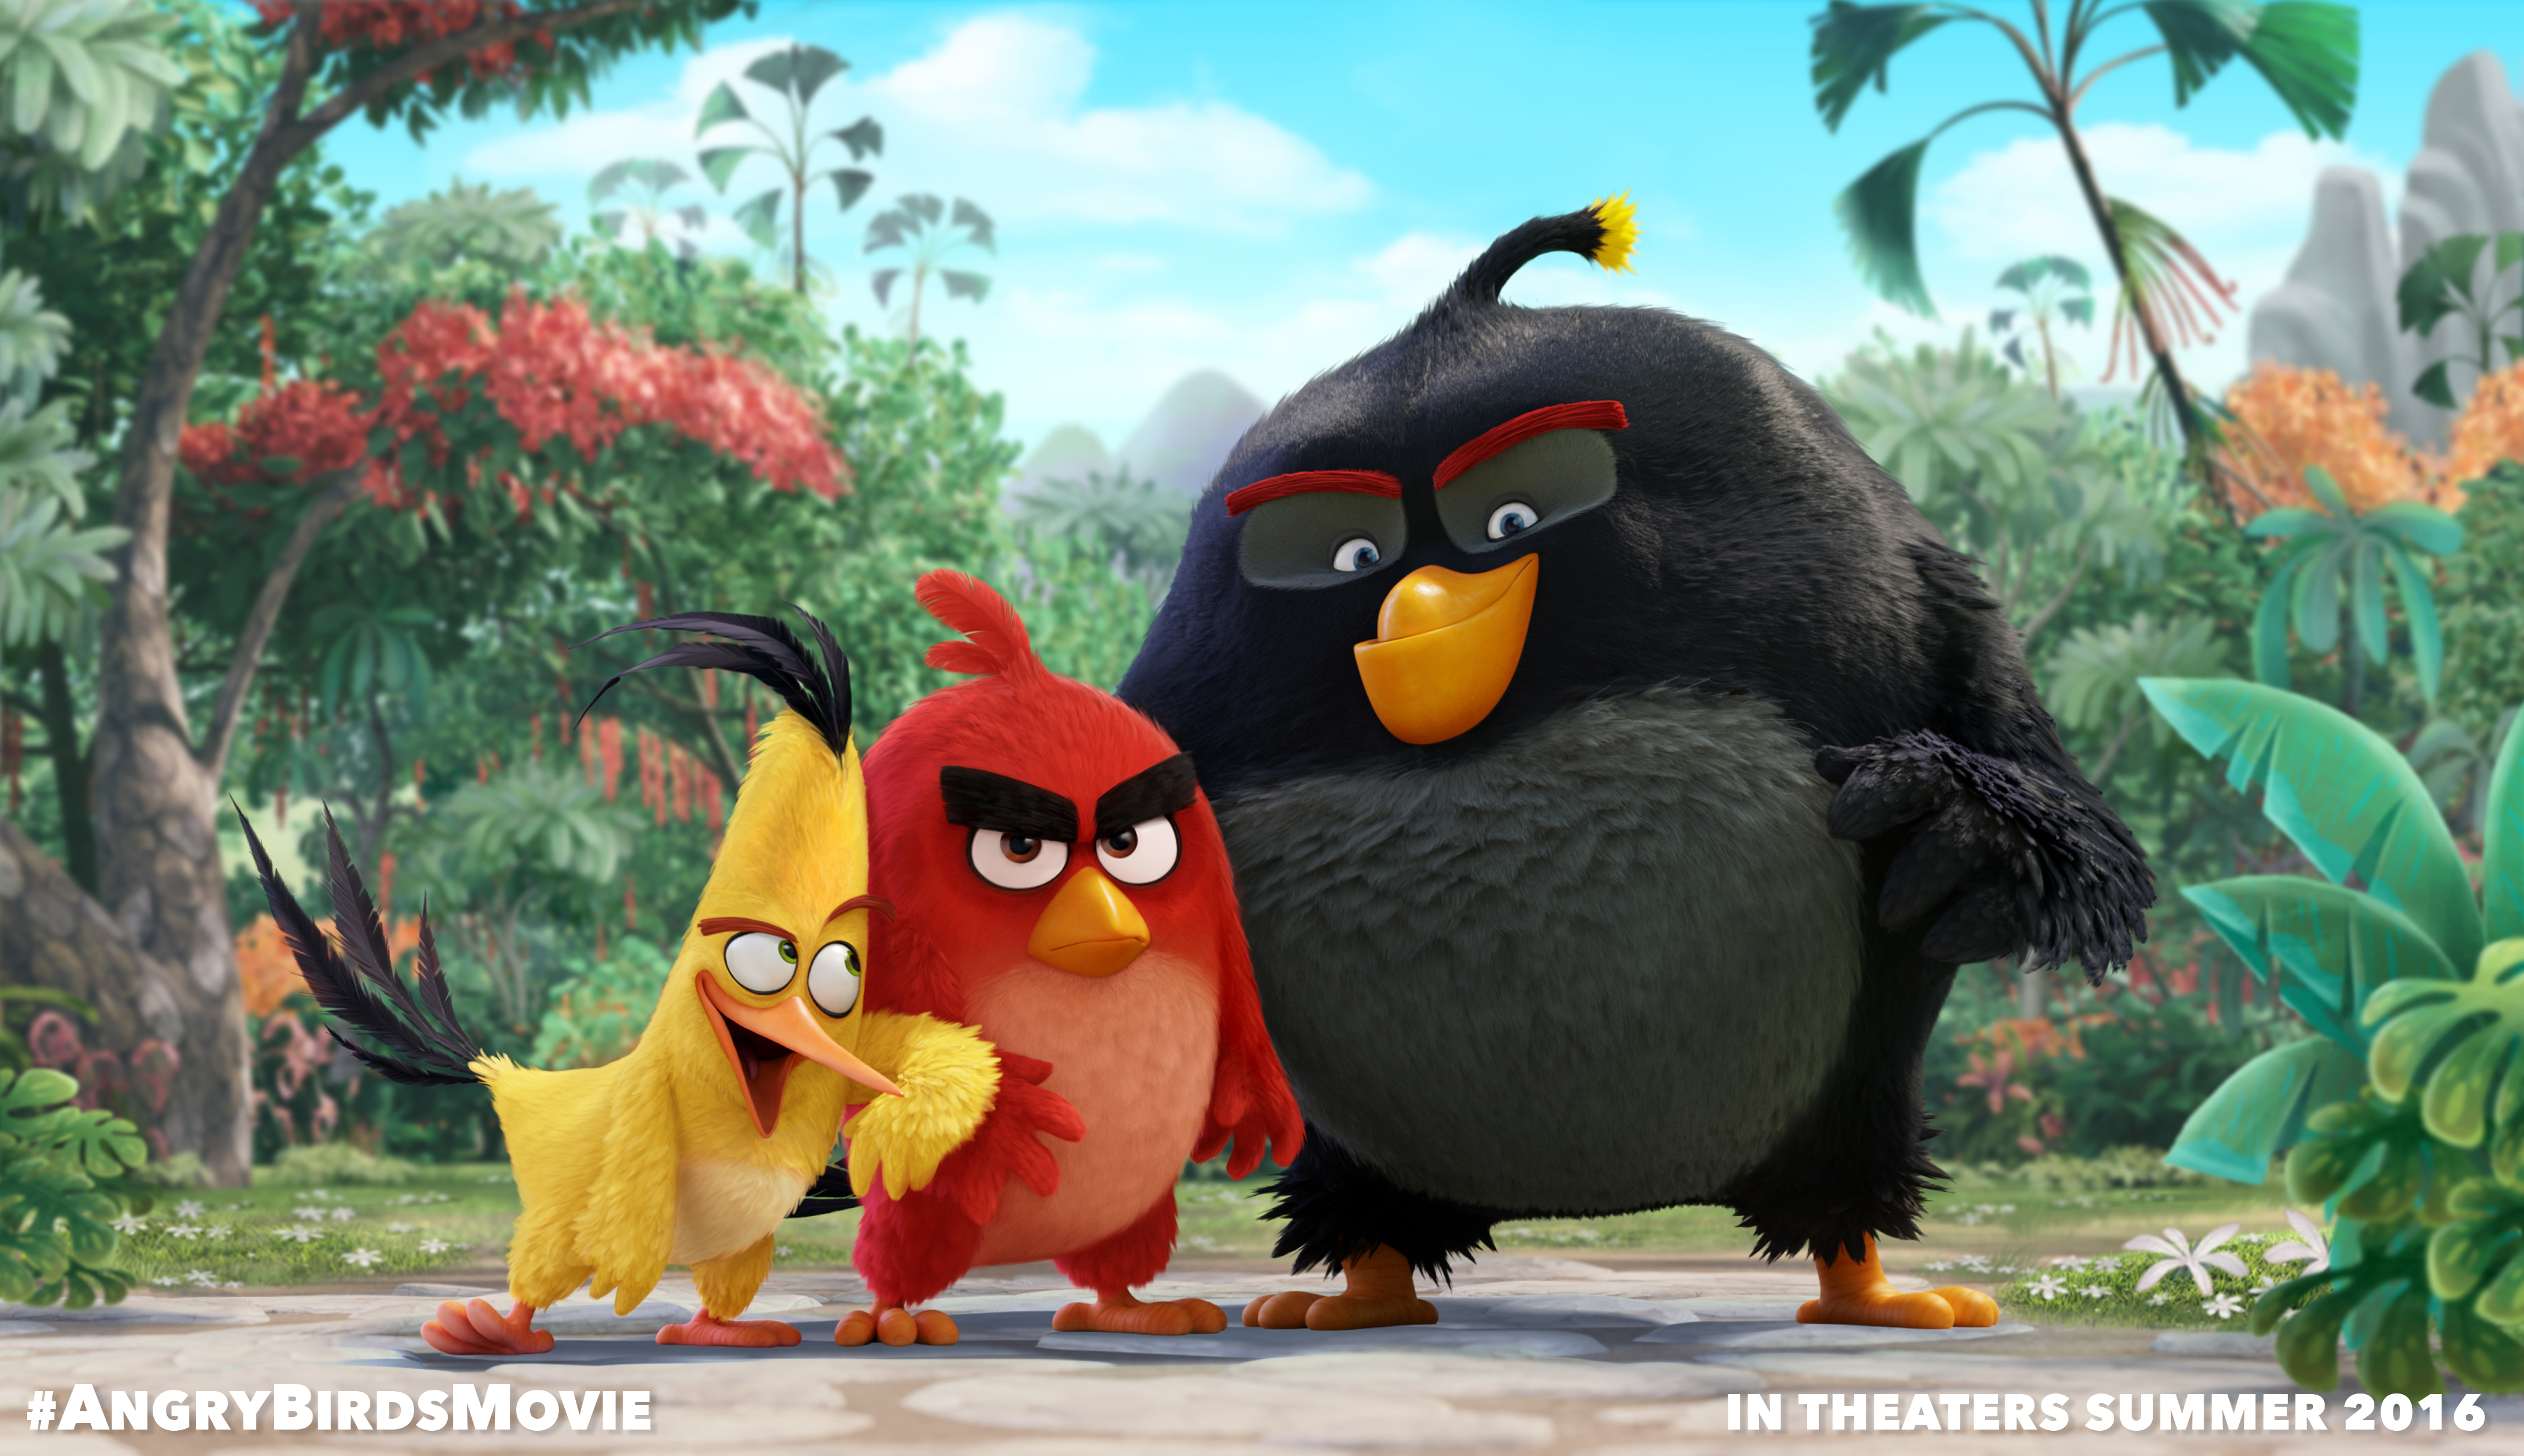 Lego Angry Birds toys are happening and will be available in spring 2016